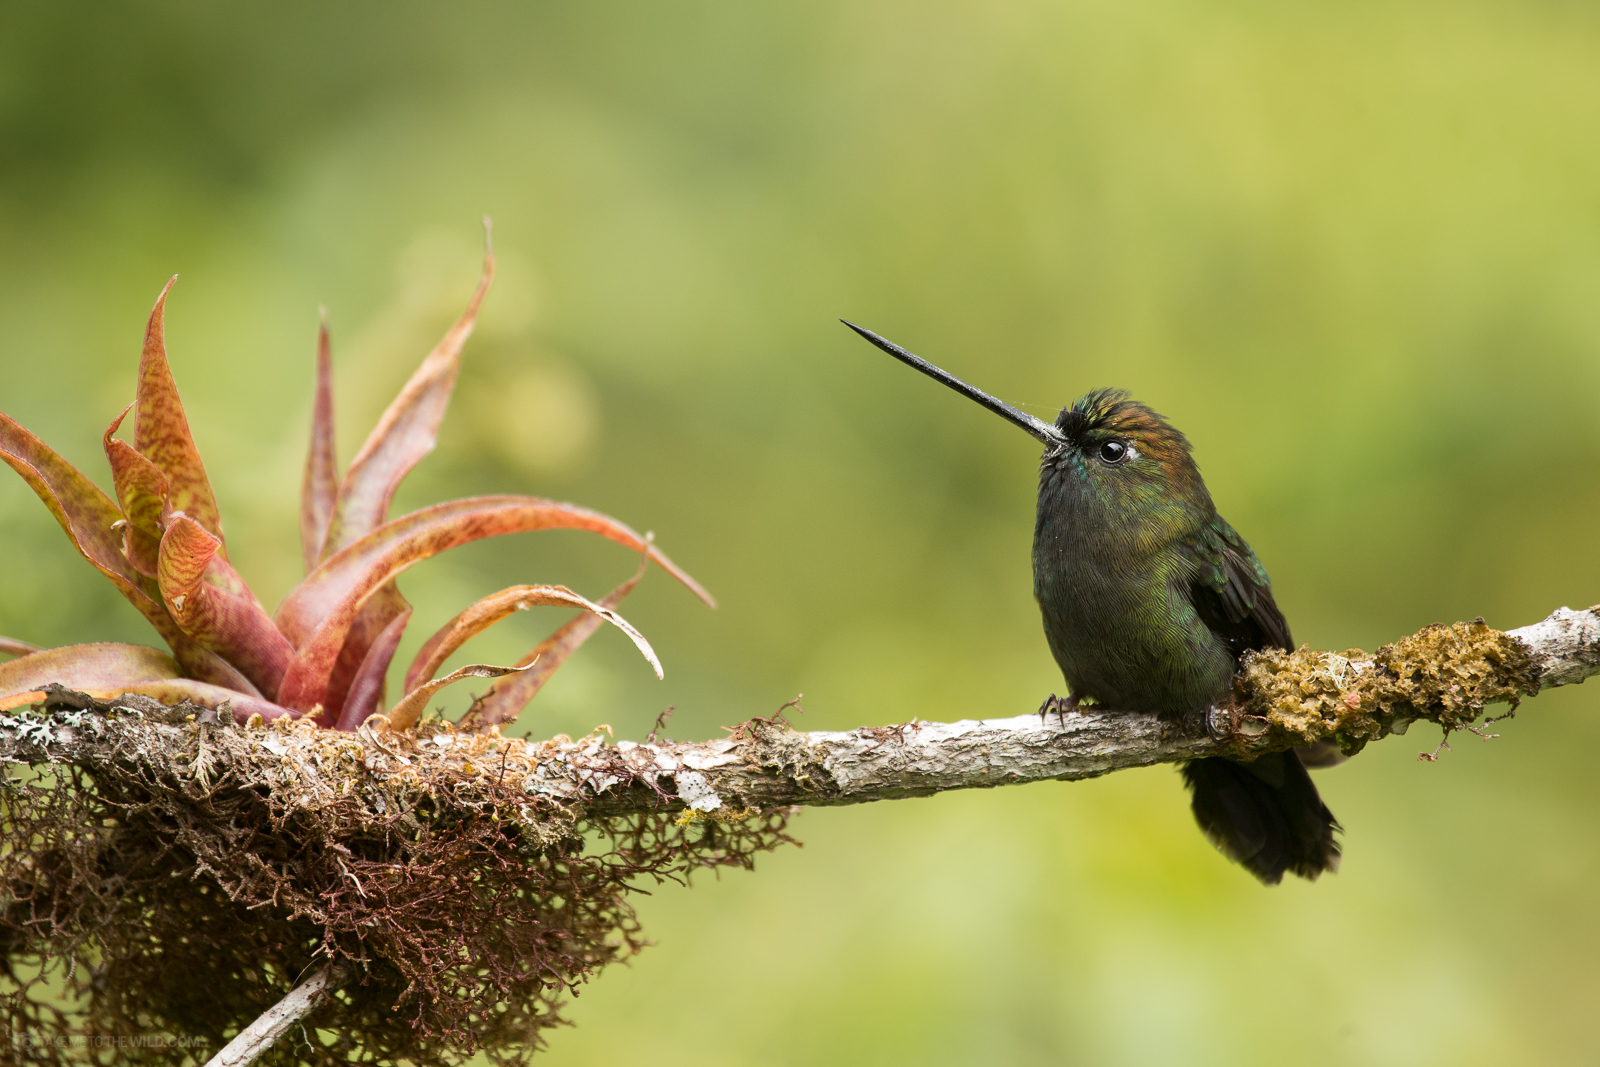 Green-fronted lancebill (Doryfera ludovicae) perched on a branch at the highlands of Costa Rica